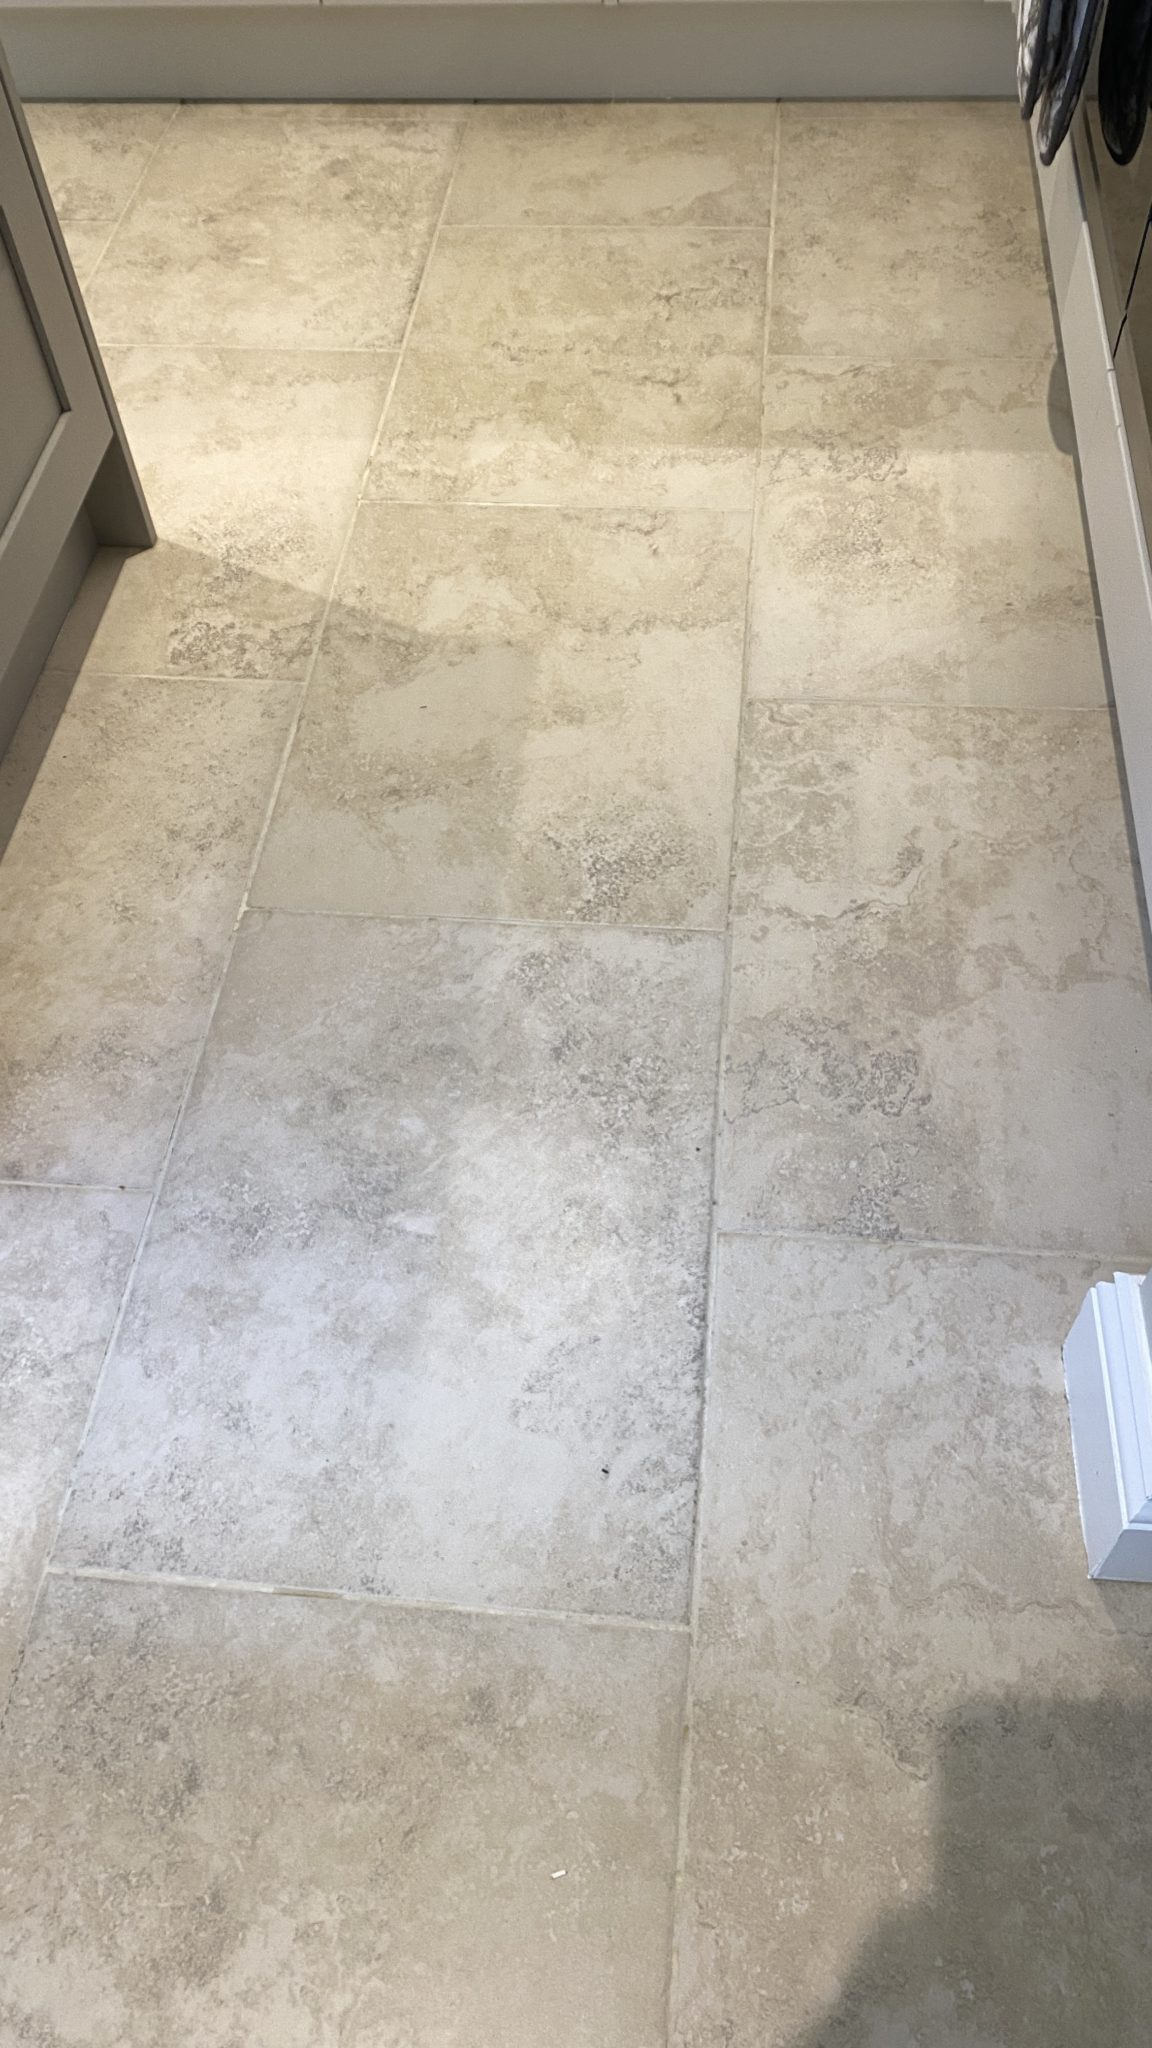 Ceramic tiled floor with cleaned grout